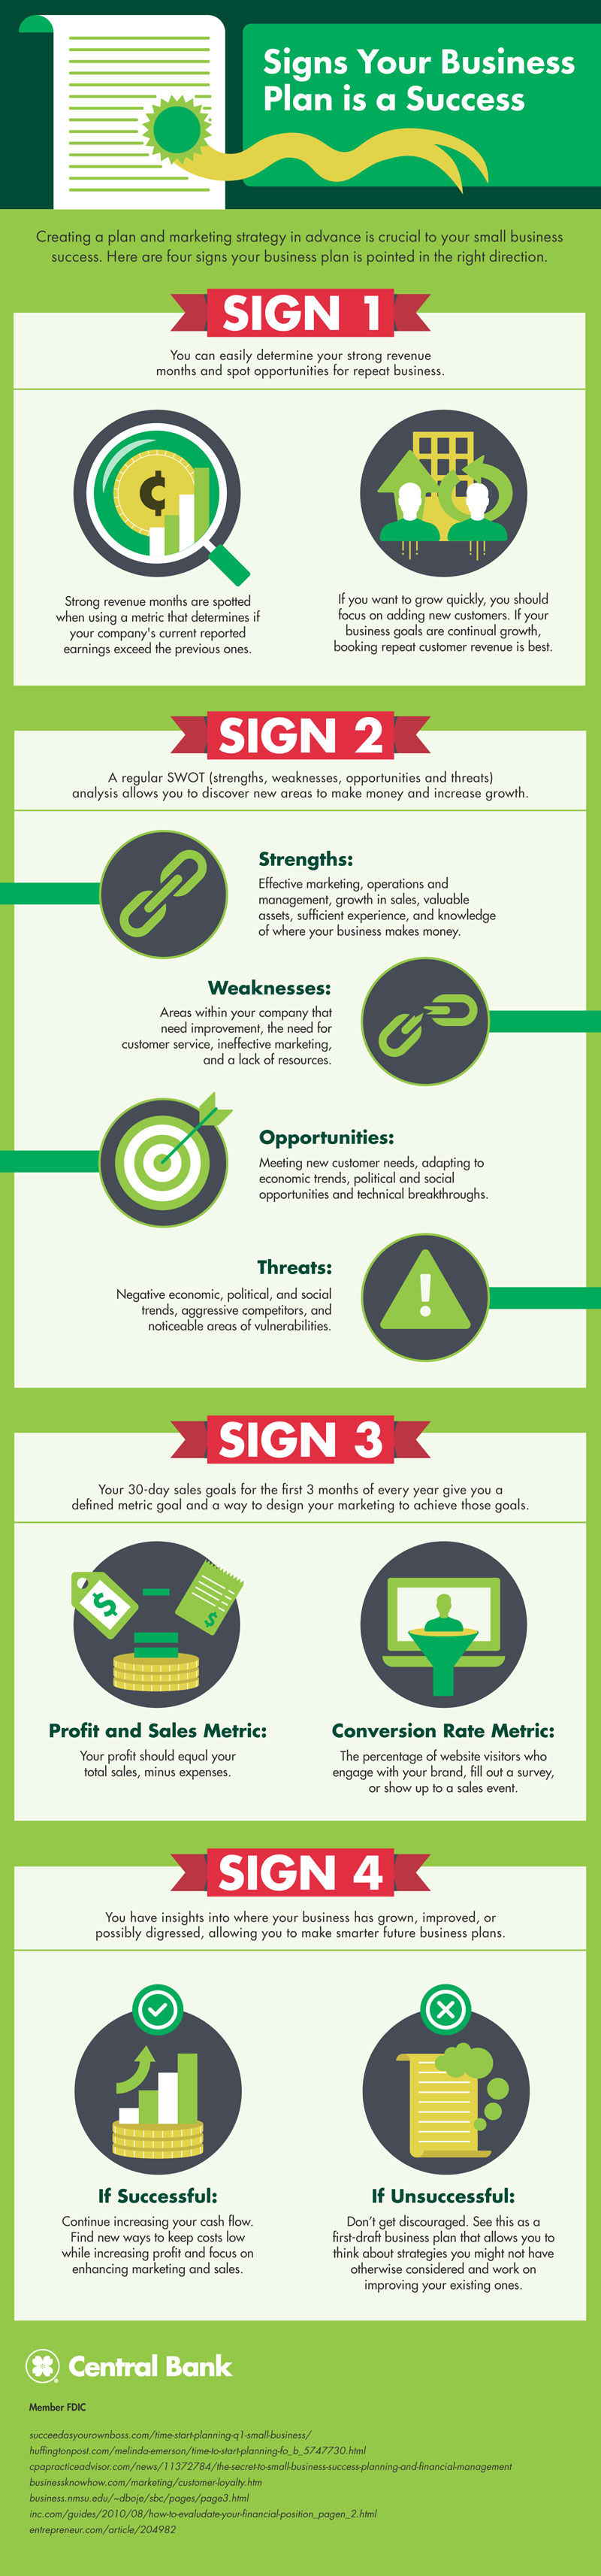 4 Signs Your Business Plan is a Success | Central Bank